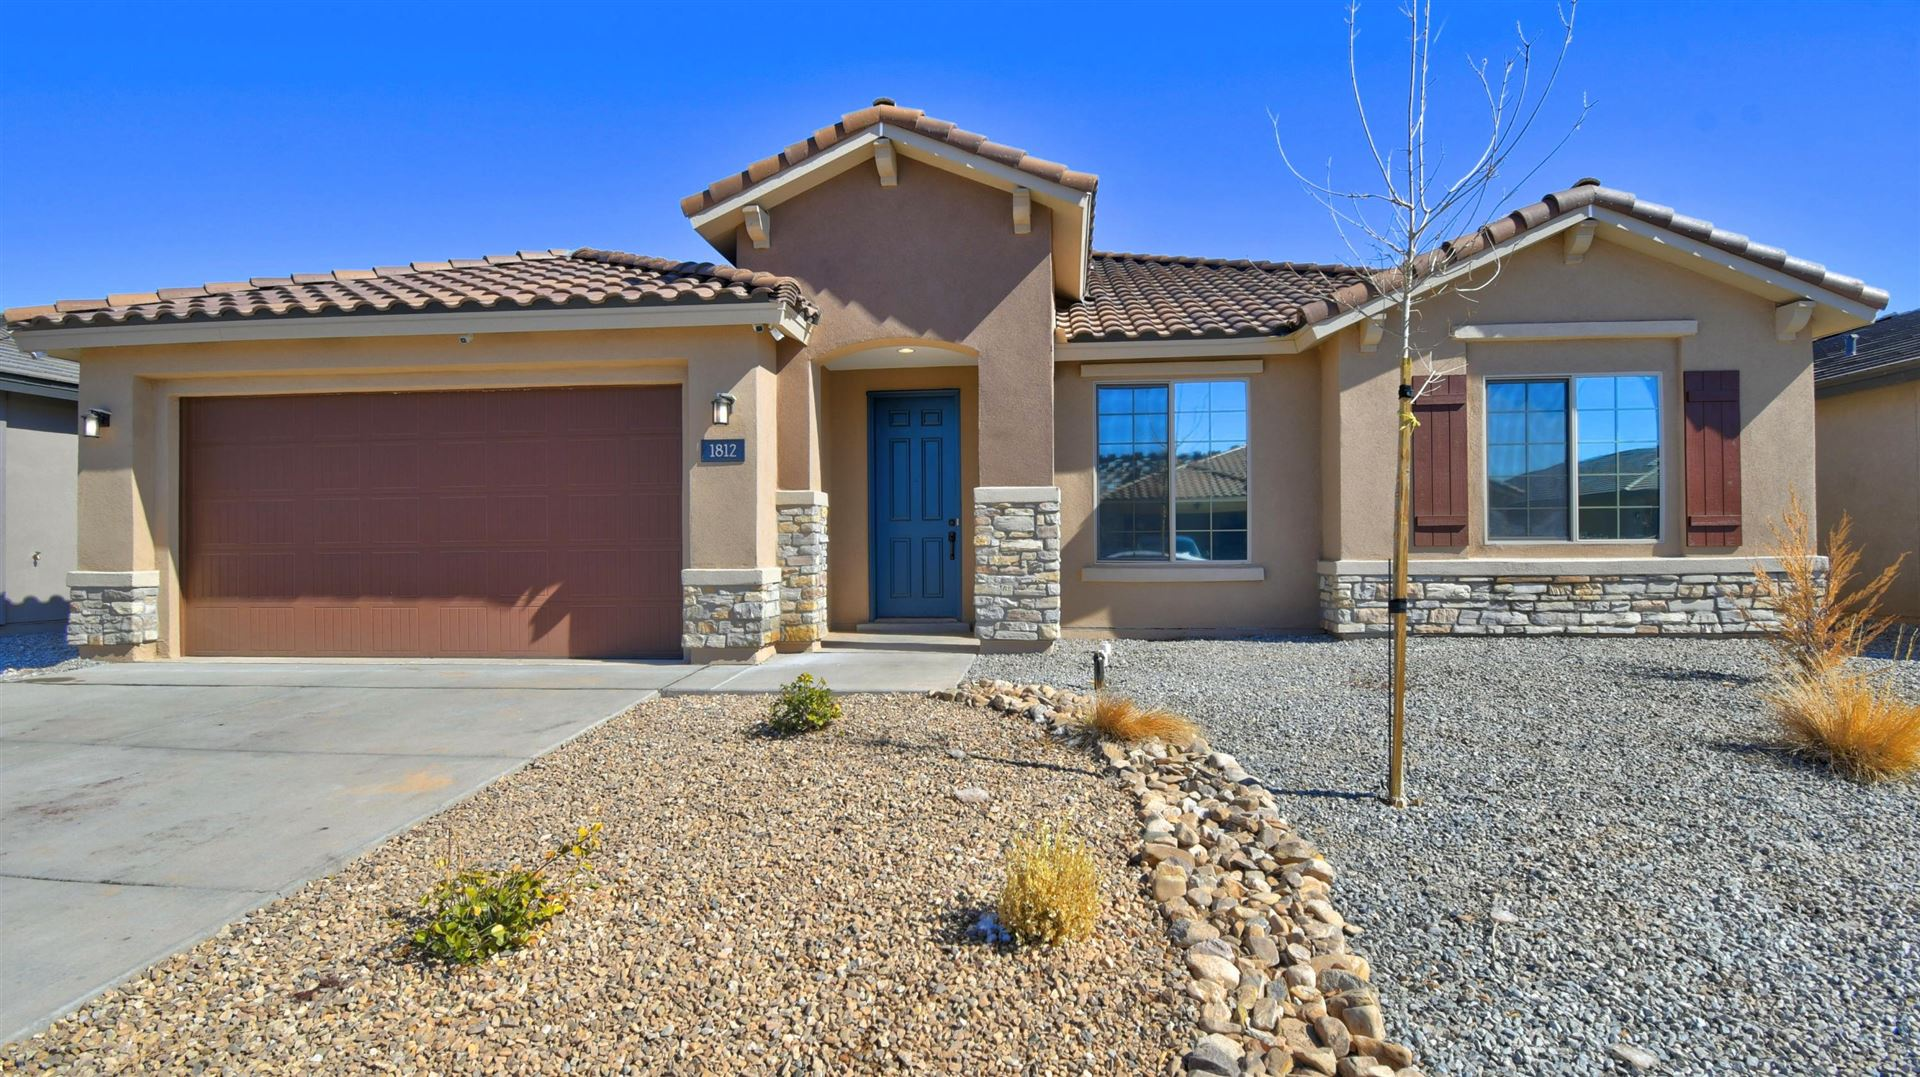 1812 DUKE CITY Street SE, Albuquerque, NM 87123 - MLS#: 986154